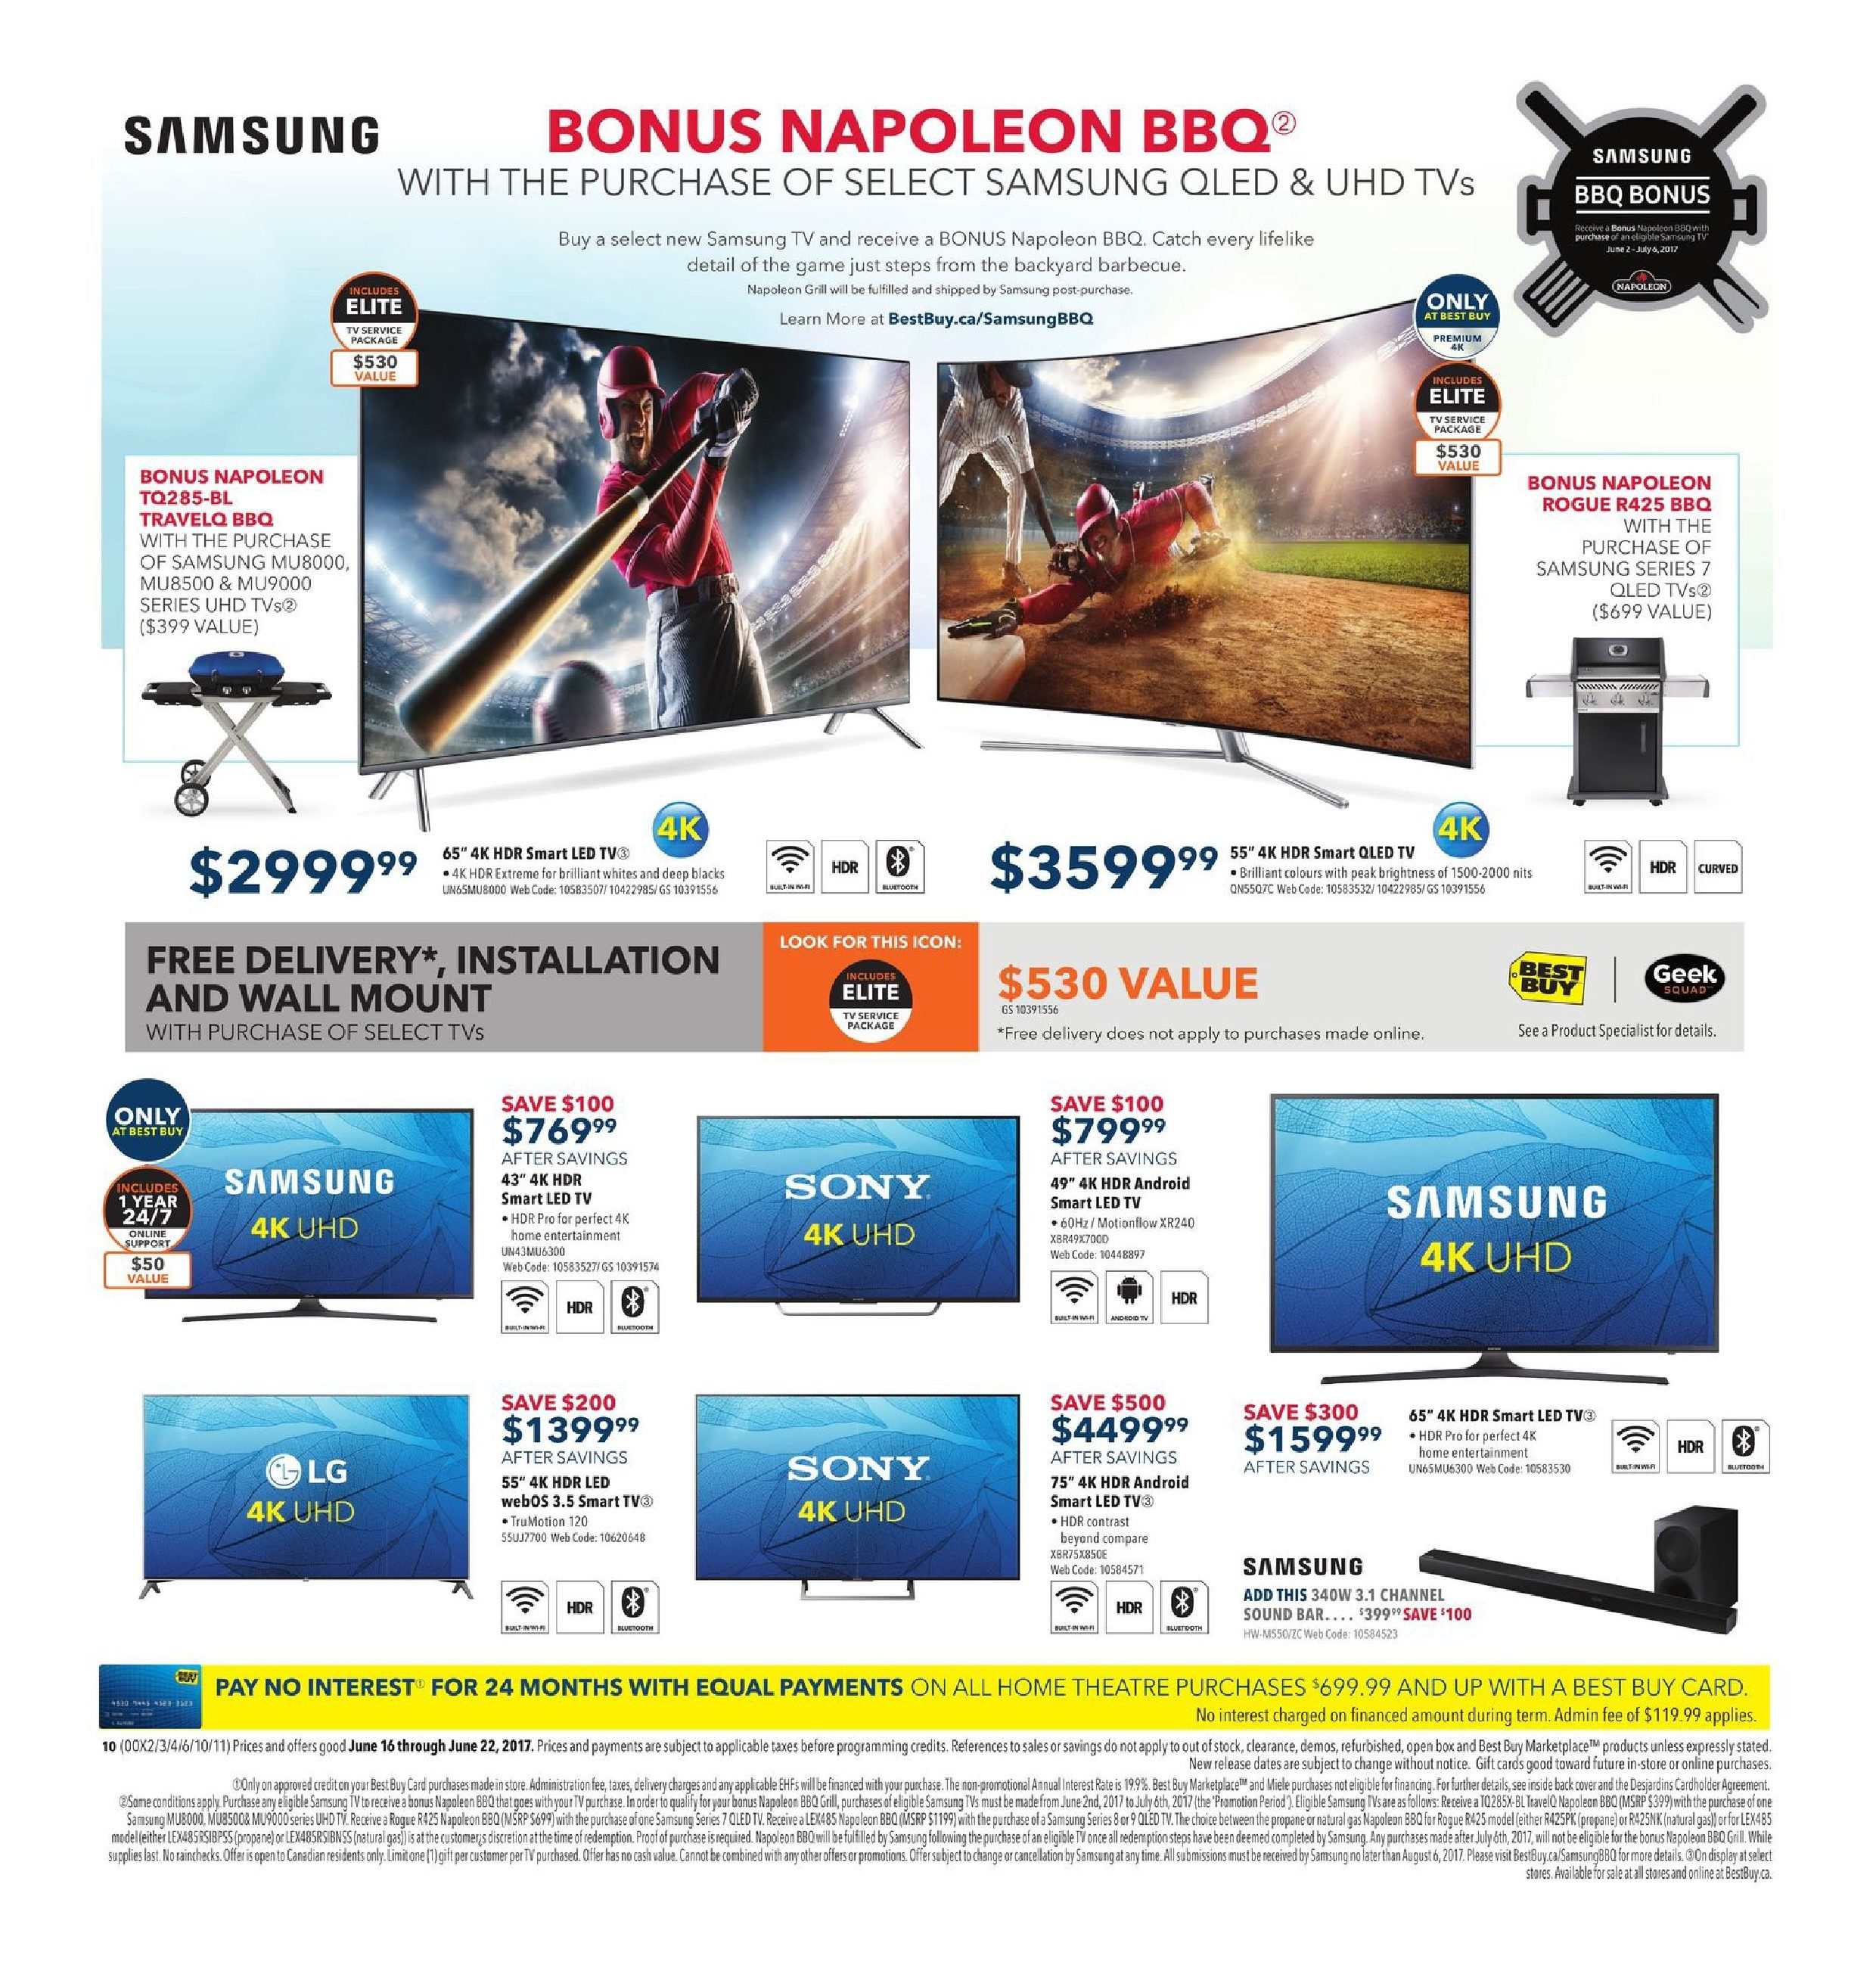 Best buy weekly flyer weekly save big on the perfect gifts jun best buy weekly flyer weekly save big on the perfect gifts jun 16 22 redflagdeals fandeluxe Choice Image